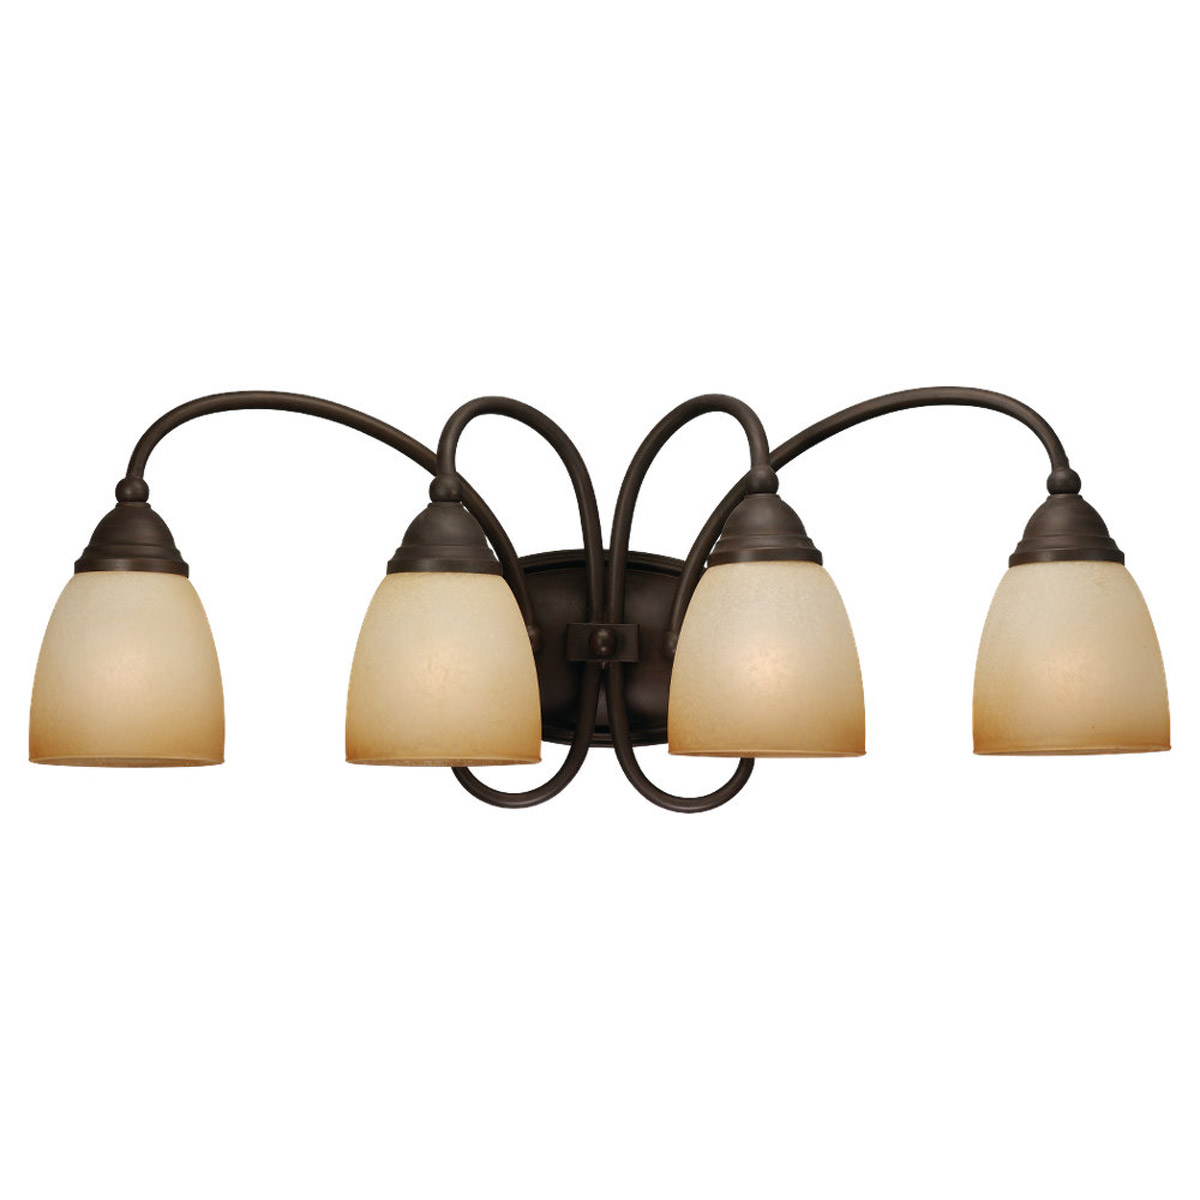 Sea Gull Lighting Montclaire 4 Light Bath Vanity in Olde Iron 44107-72 photo